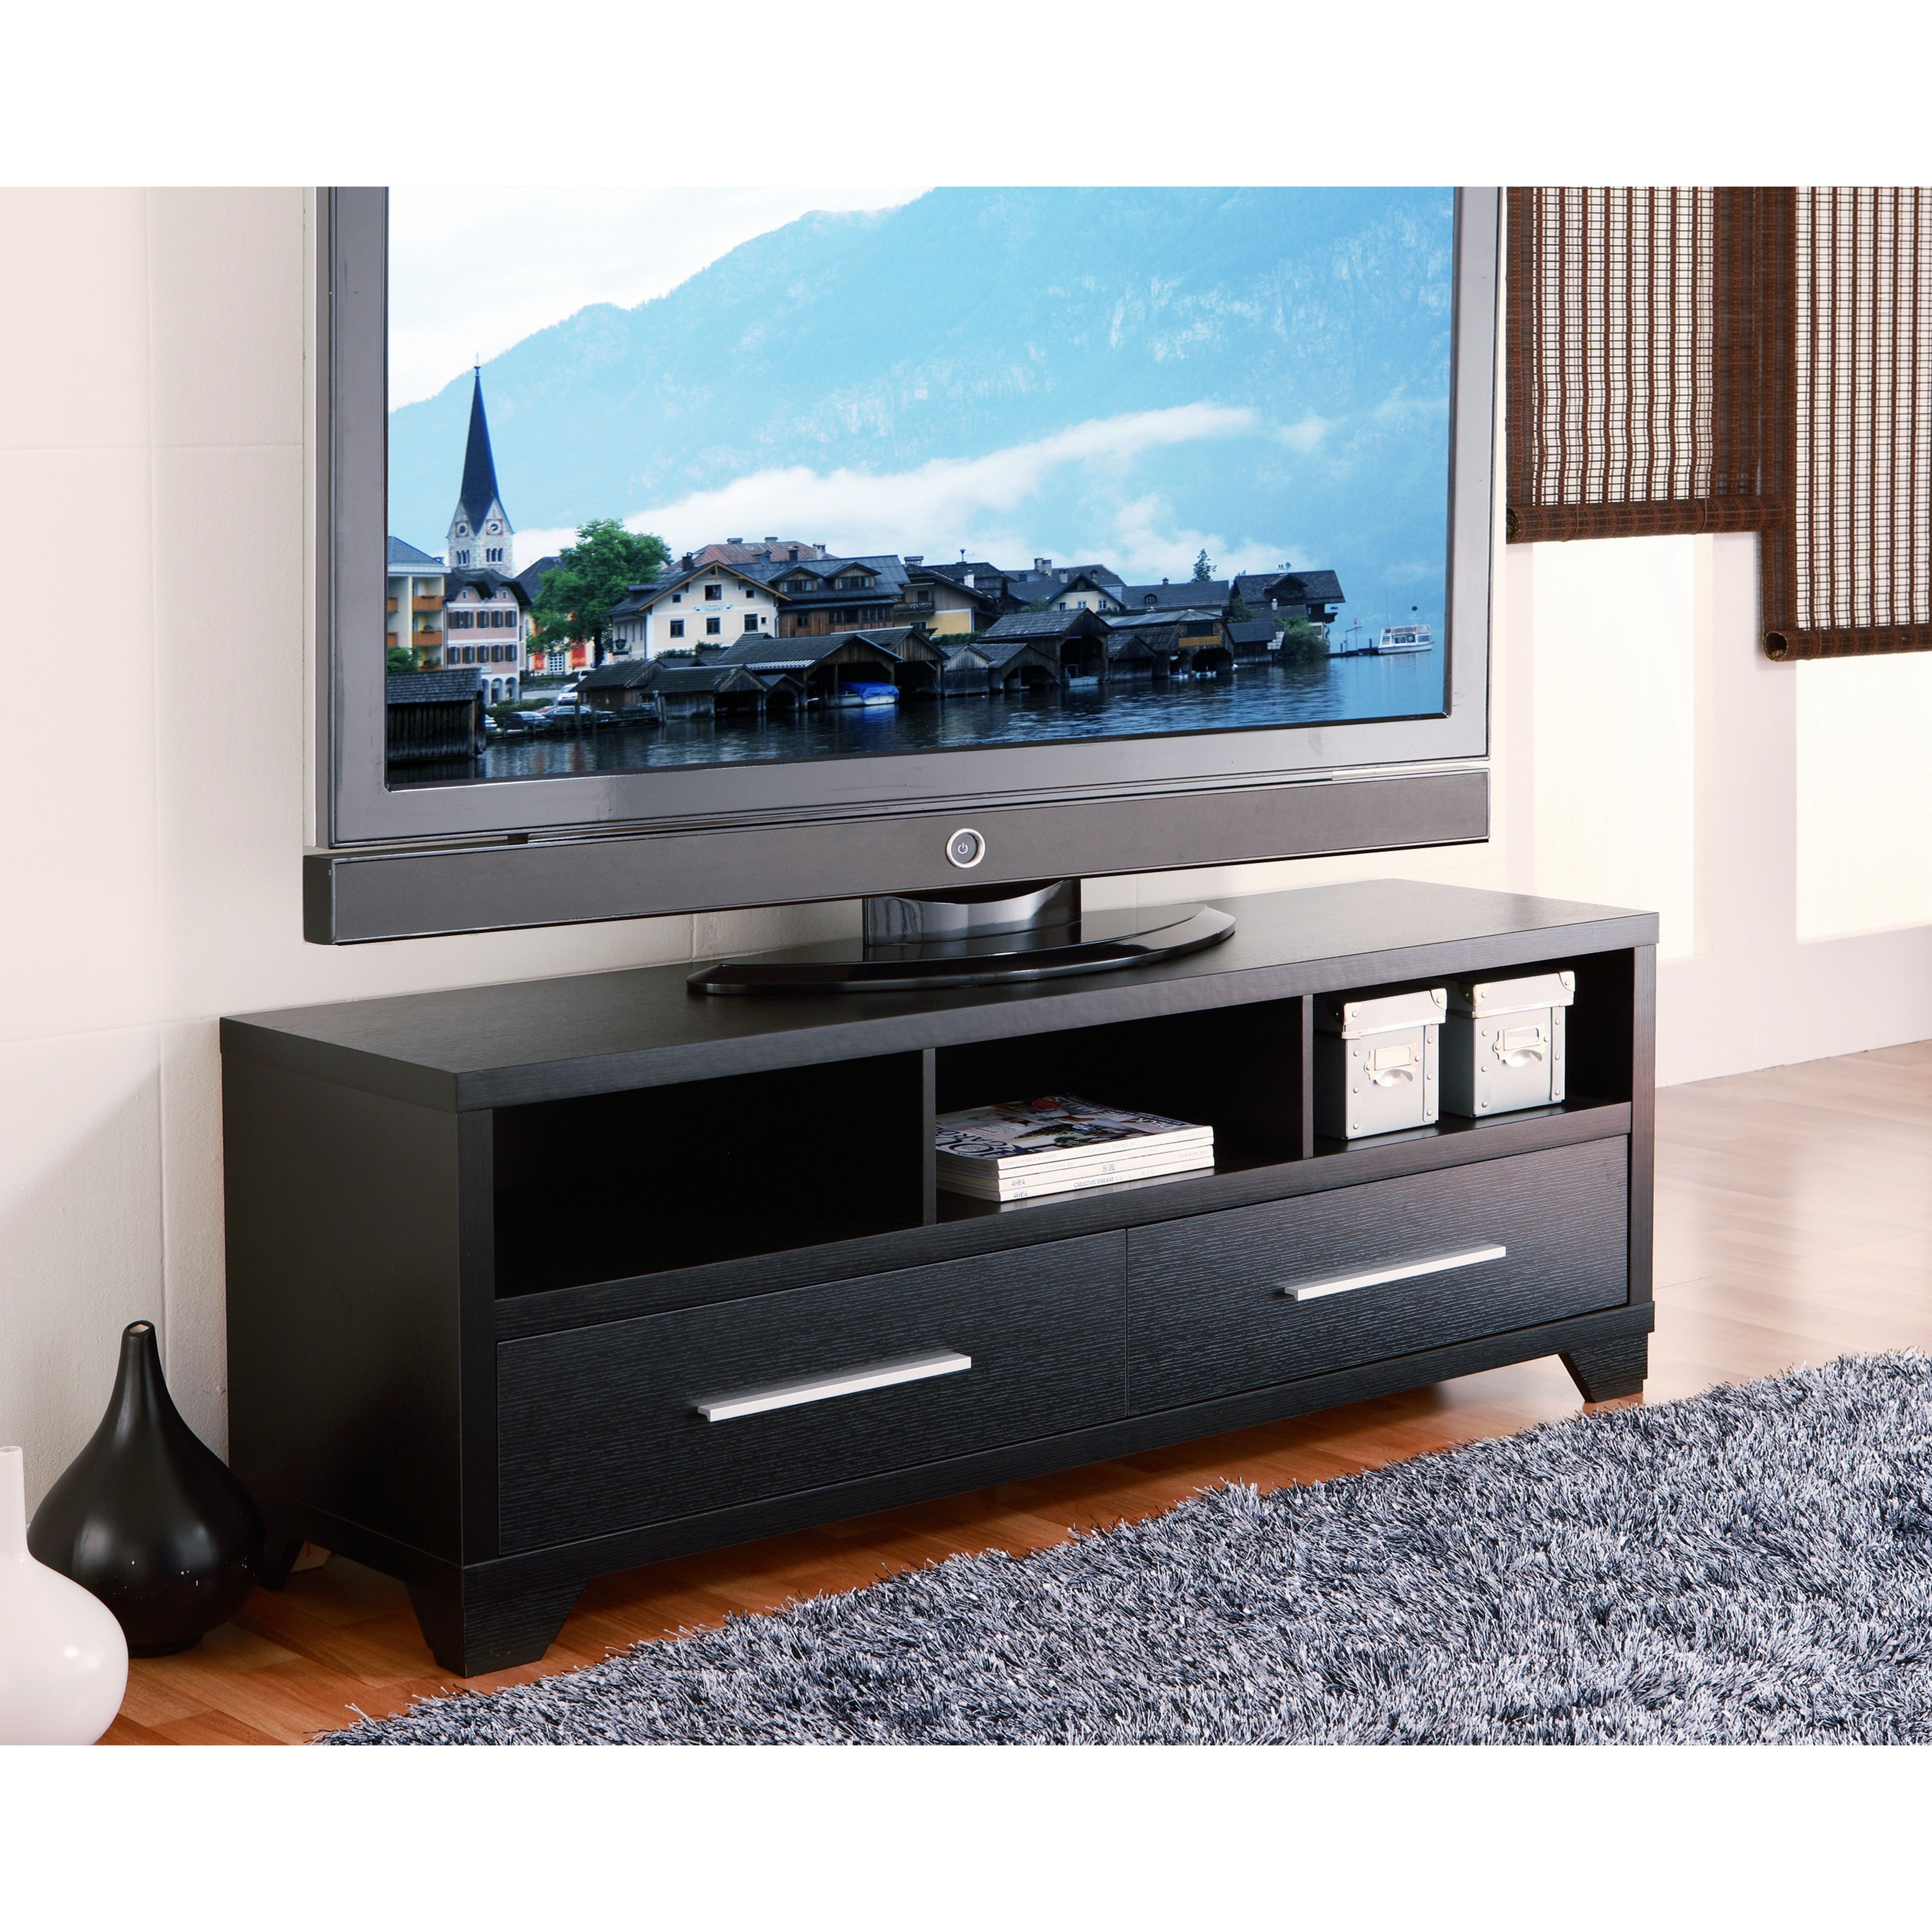 The Modern Tv Console Perfect For Any Flat Screens Up To 60 Inches This Is Designed With Beautiful Multi Storage Features Coated In A Warm Cuccino